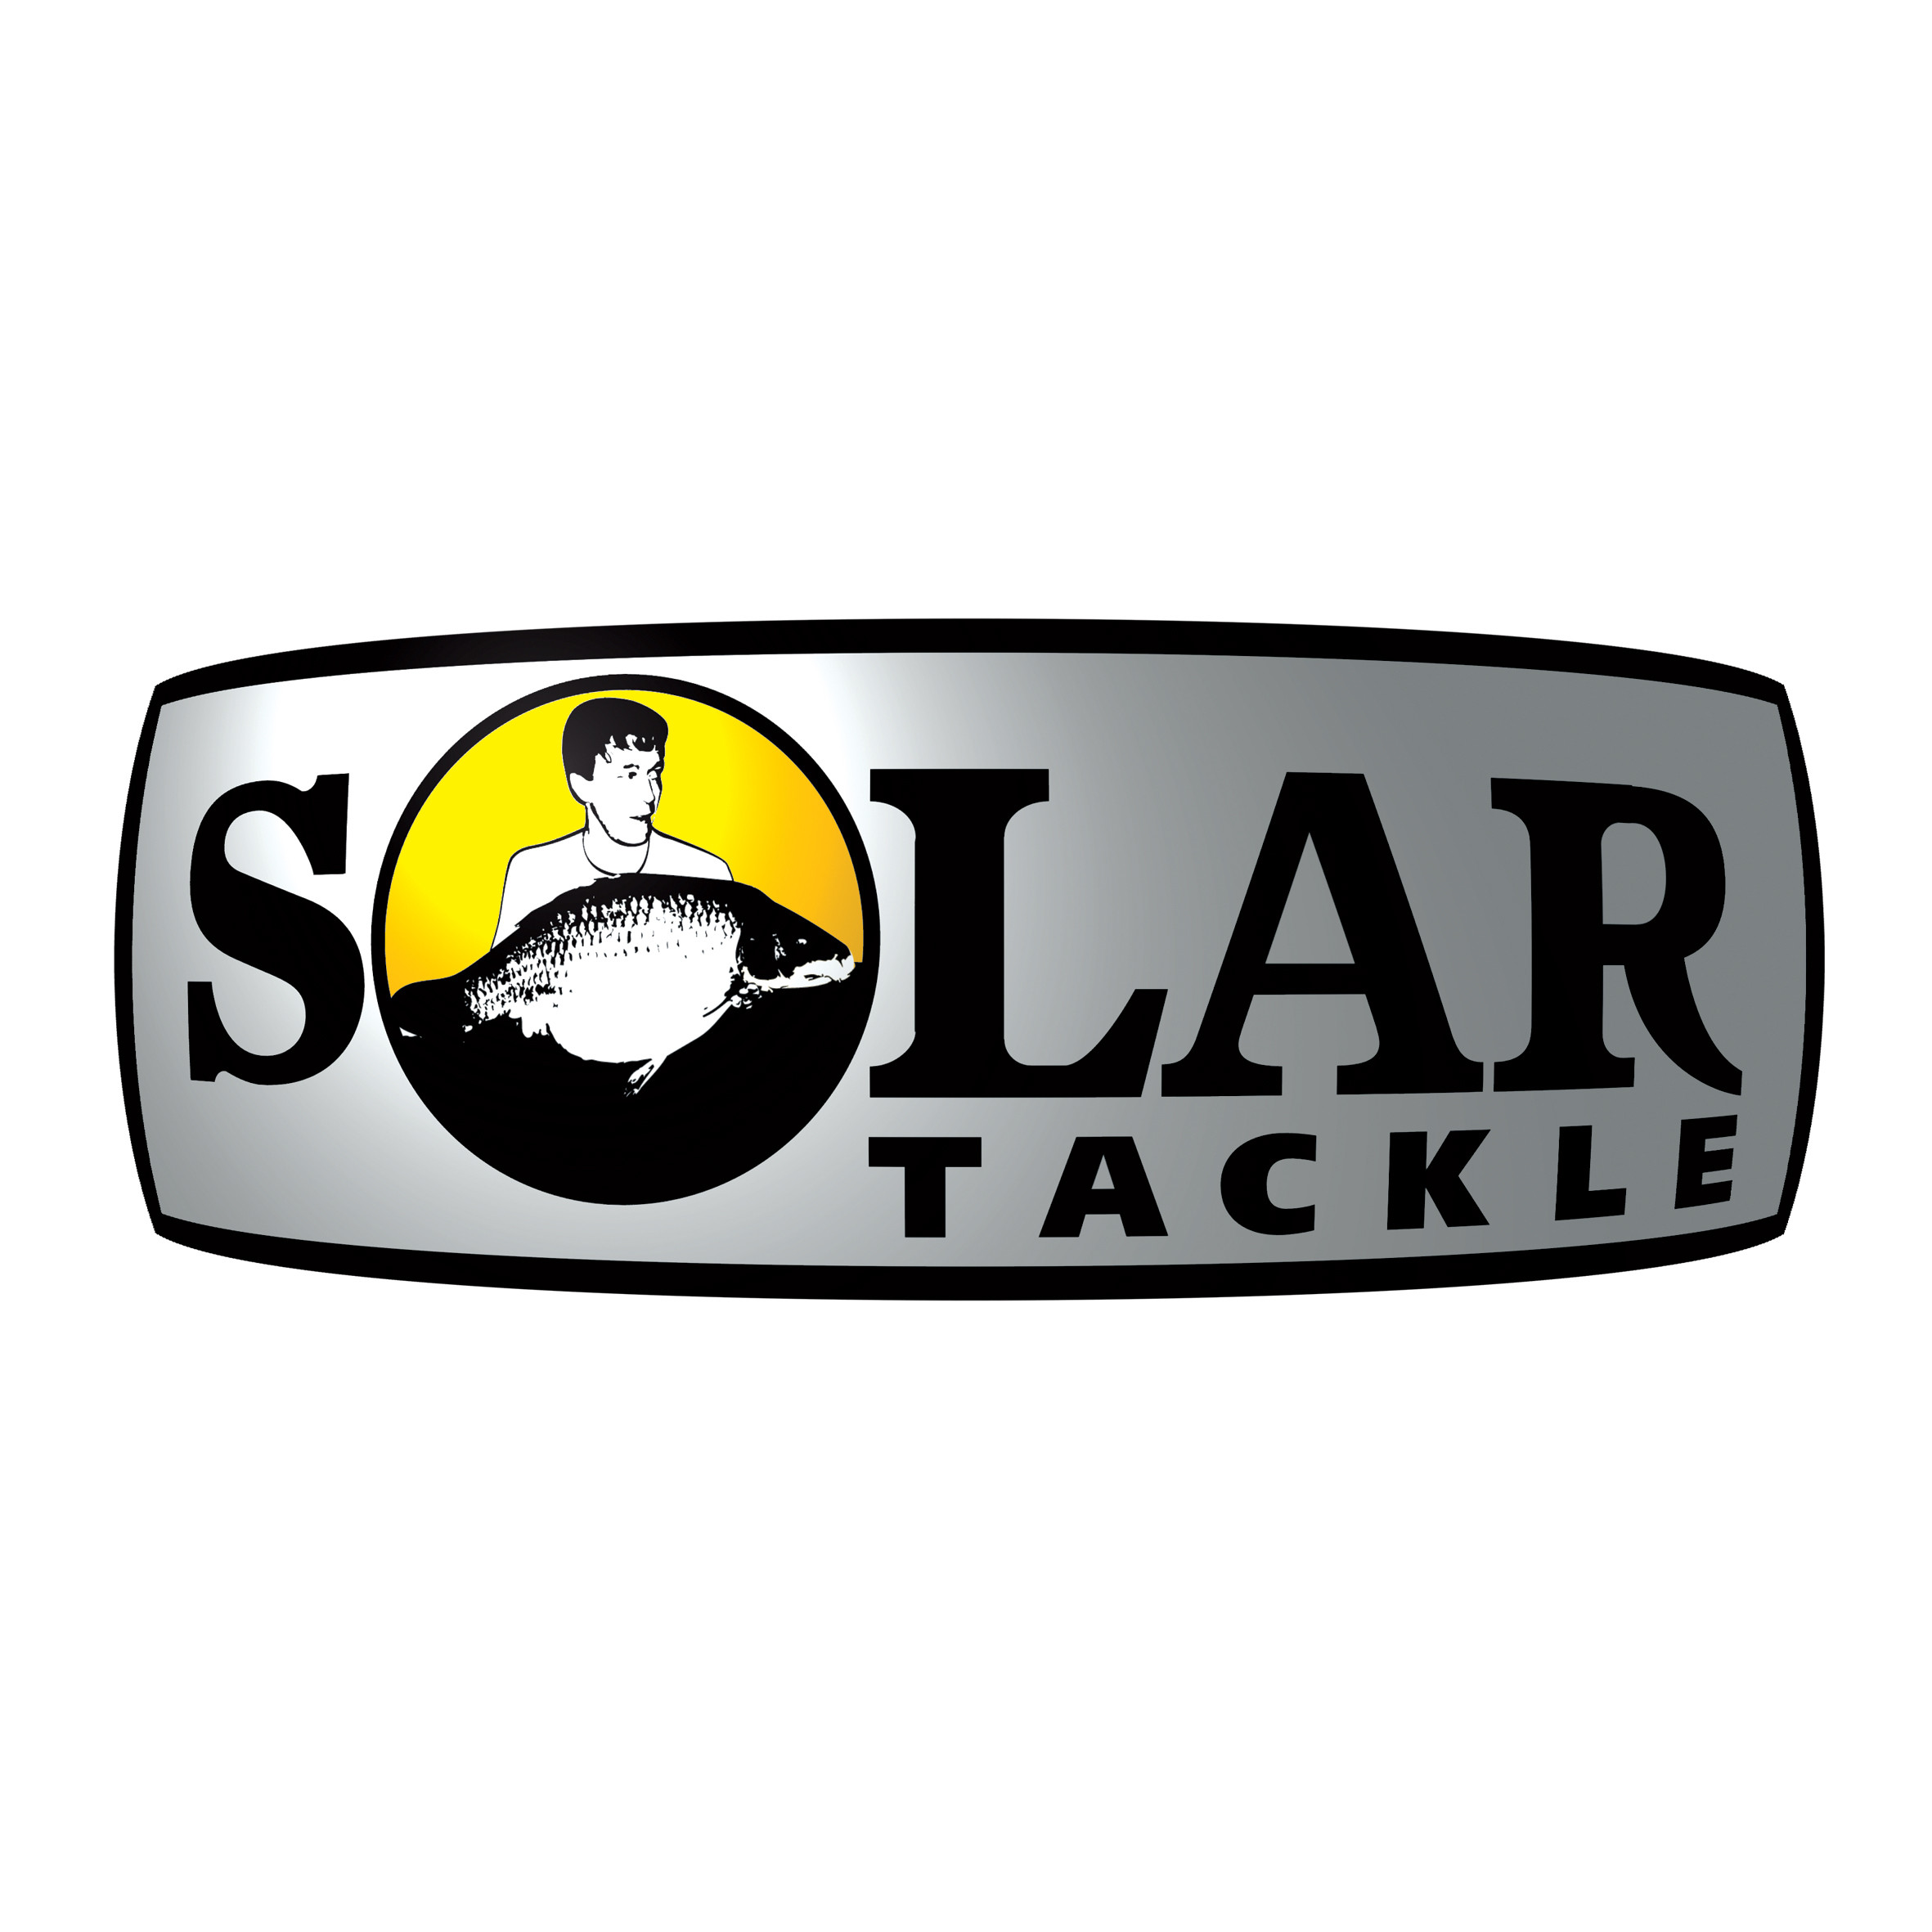 Solar Tackle